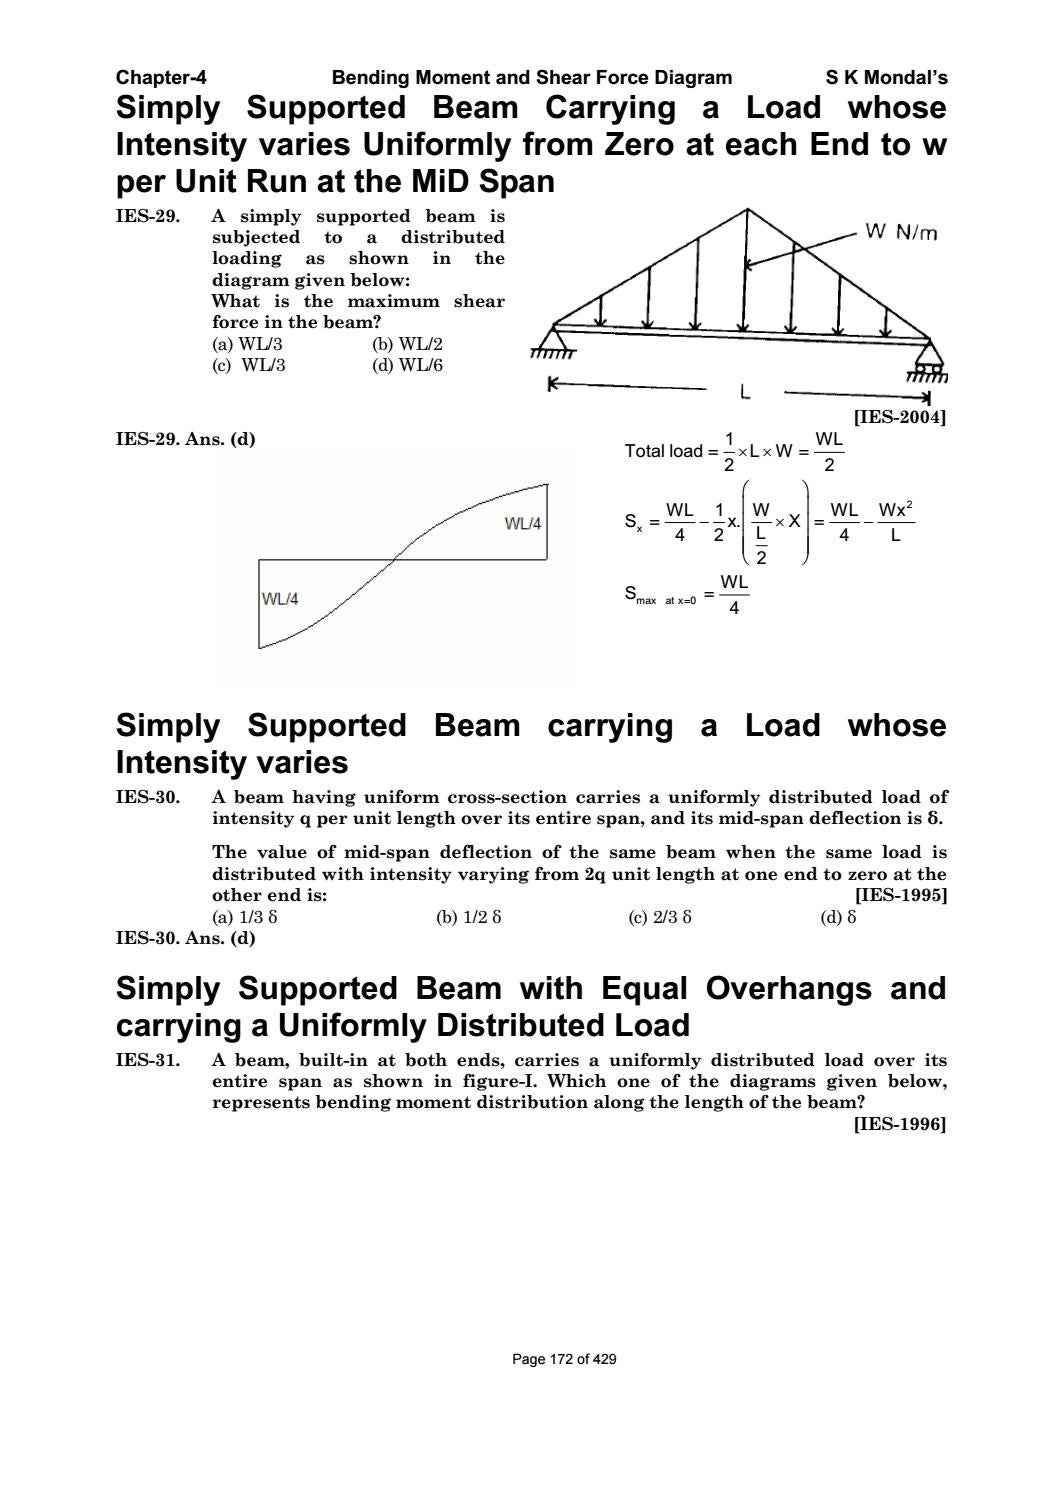 Strength Of Materials By S K Mondal Pdf Sdharmaraj Issuu Beam Loading Diagram